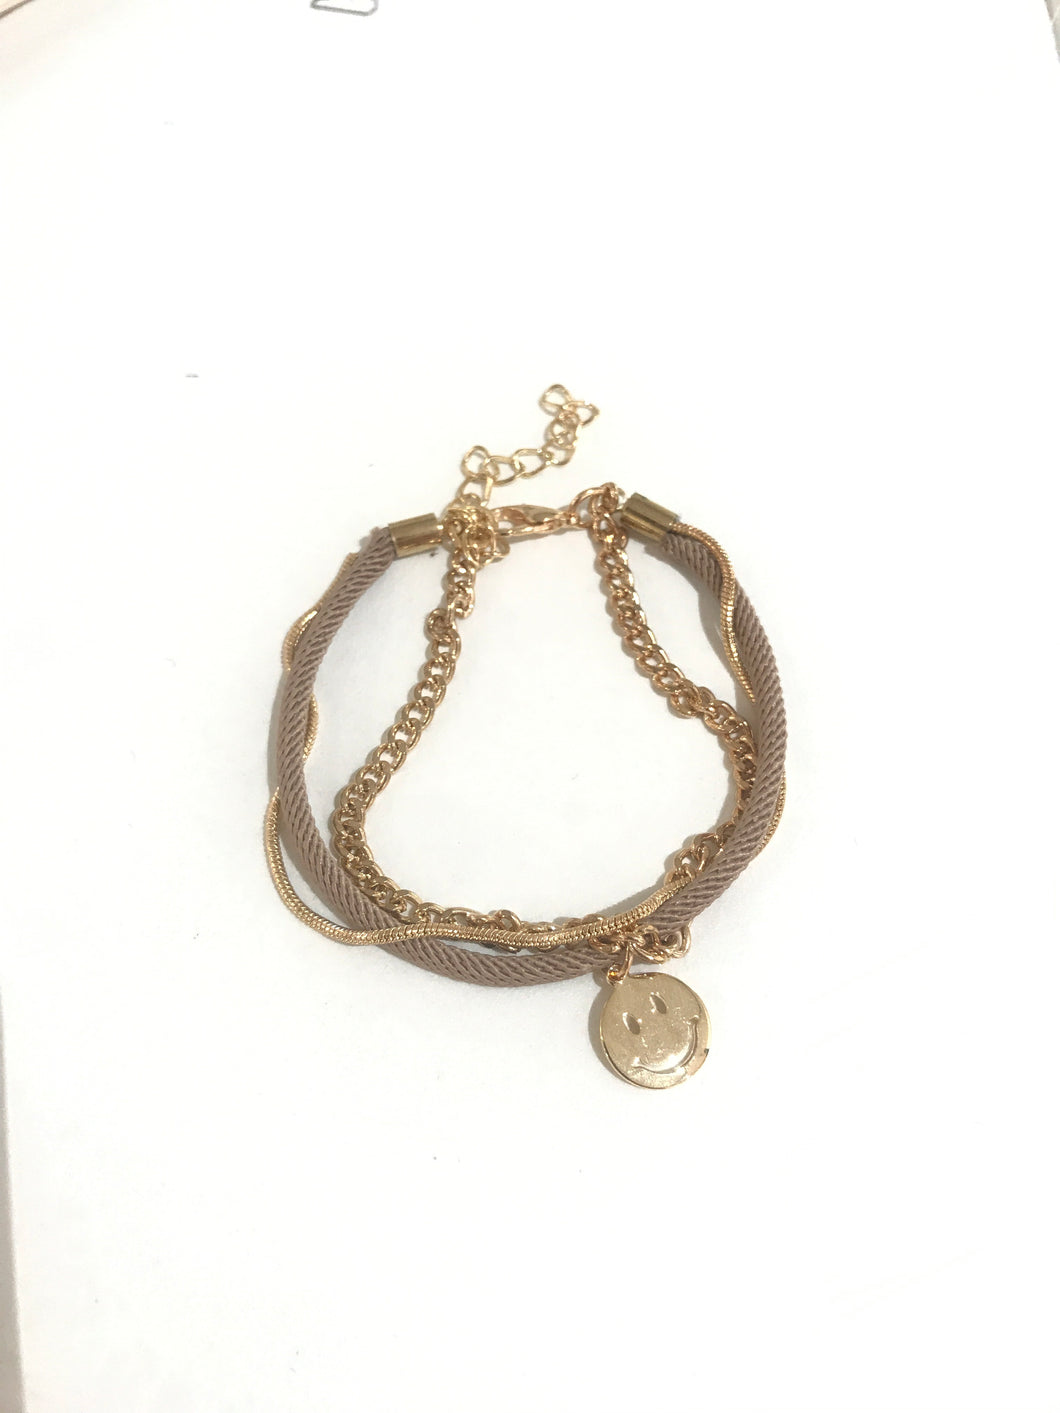 HAPPY FACE Bracelet -3 chains